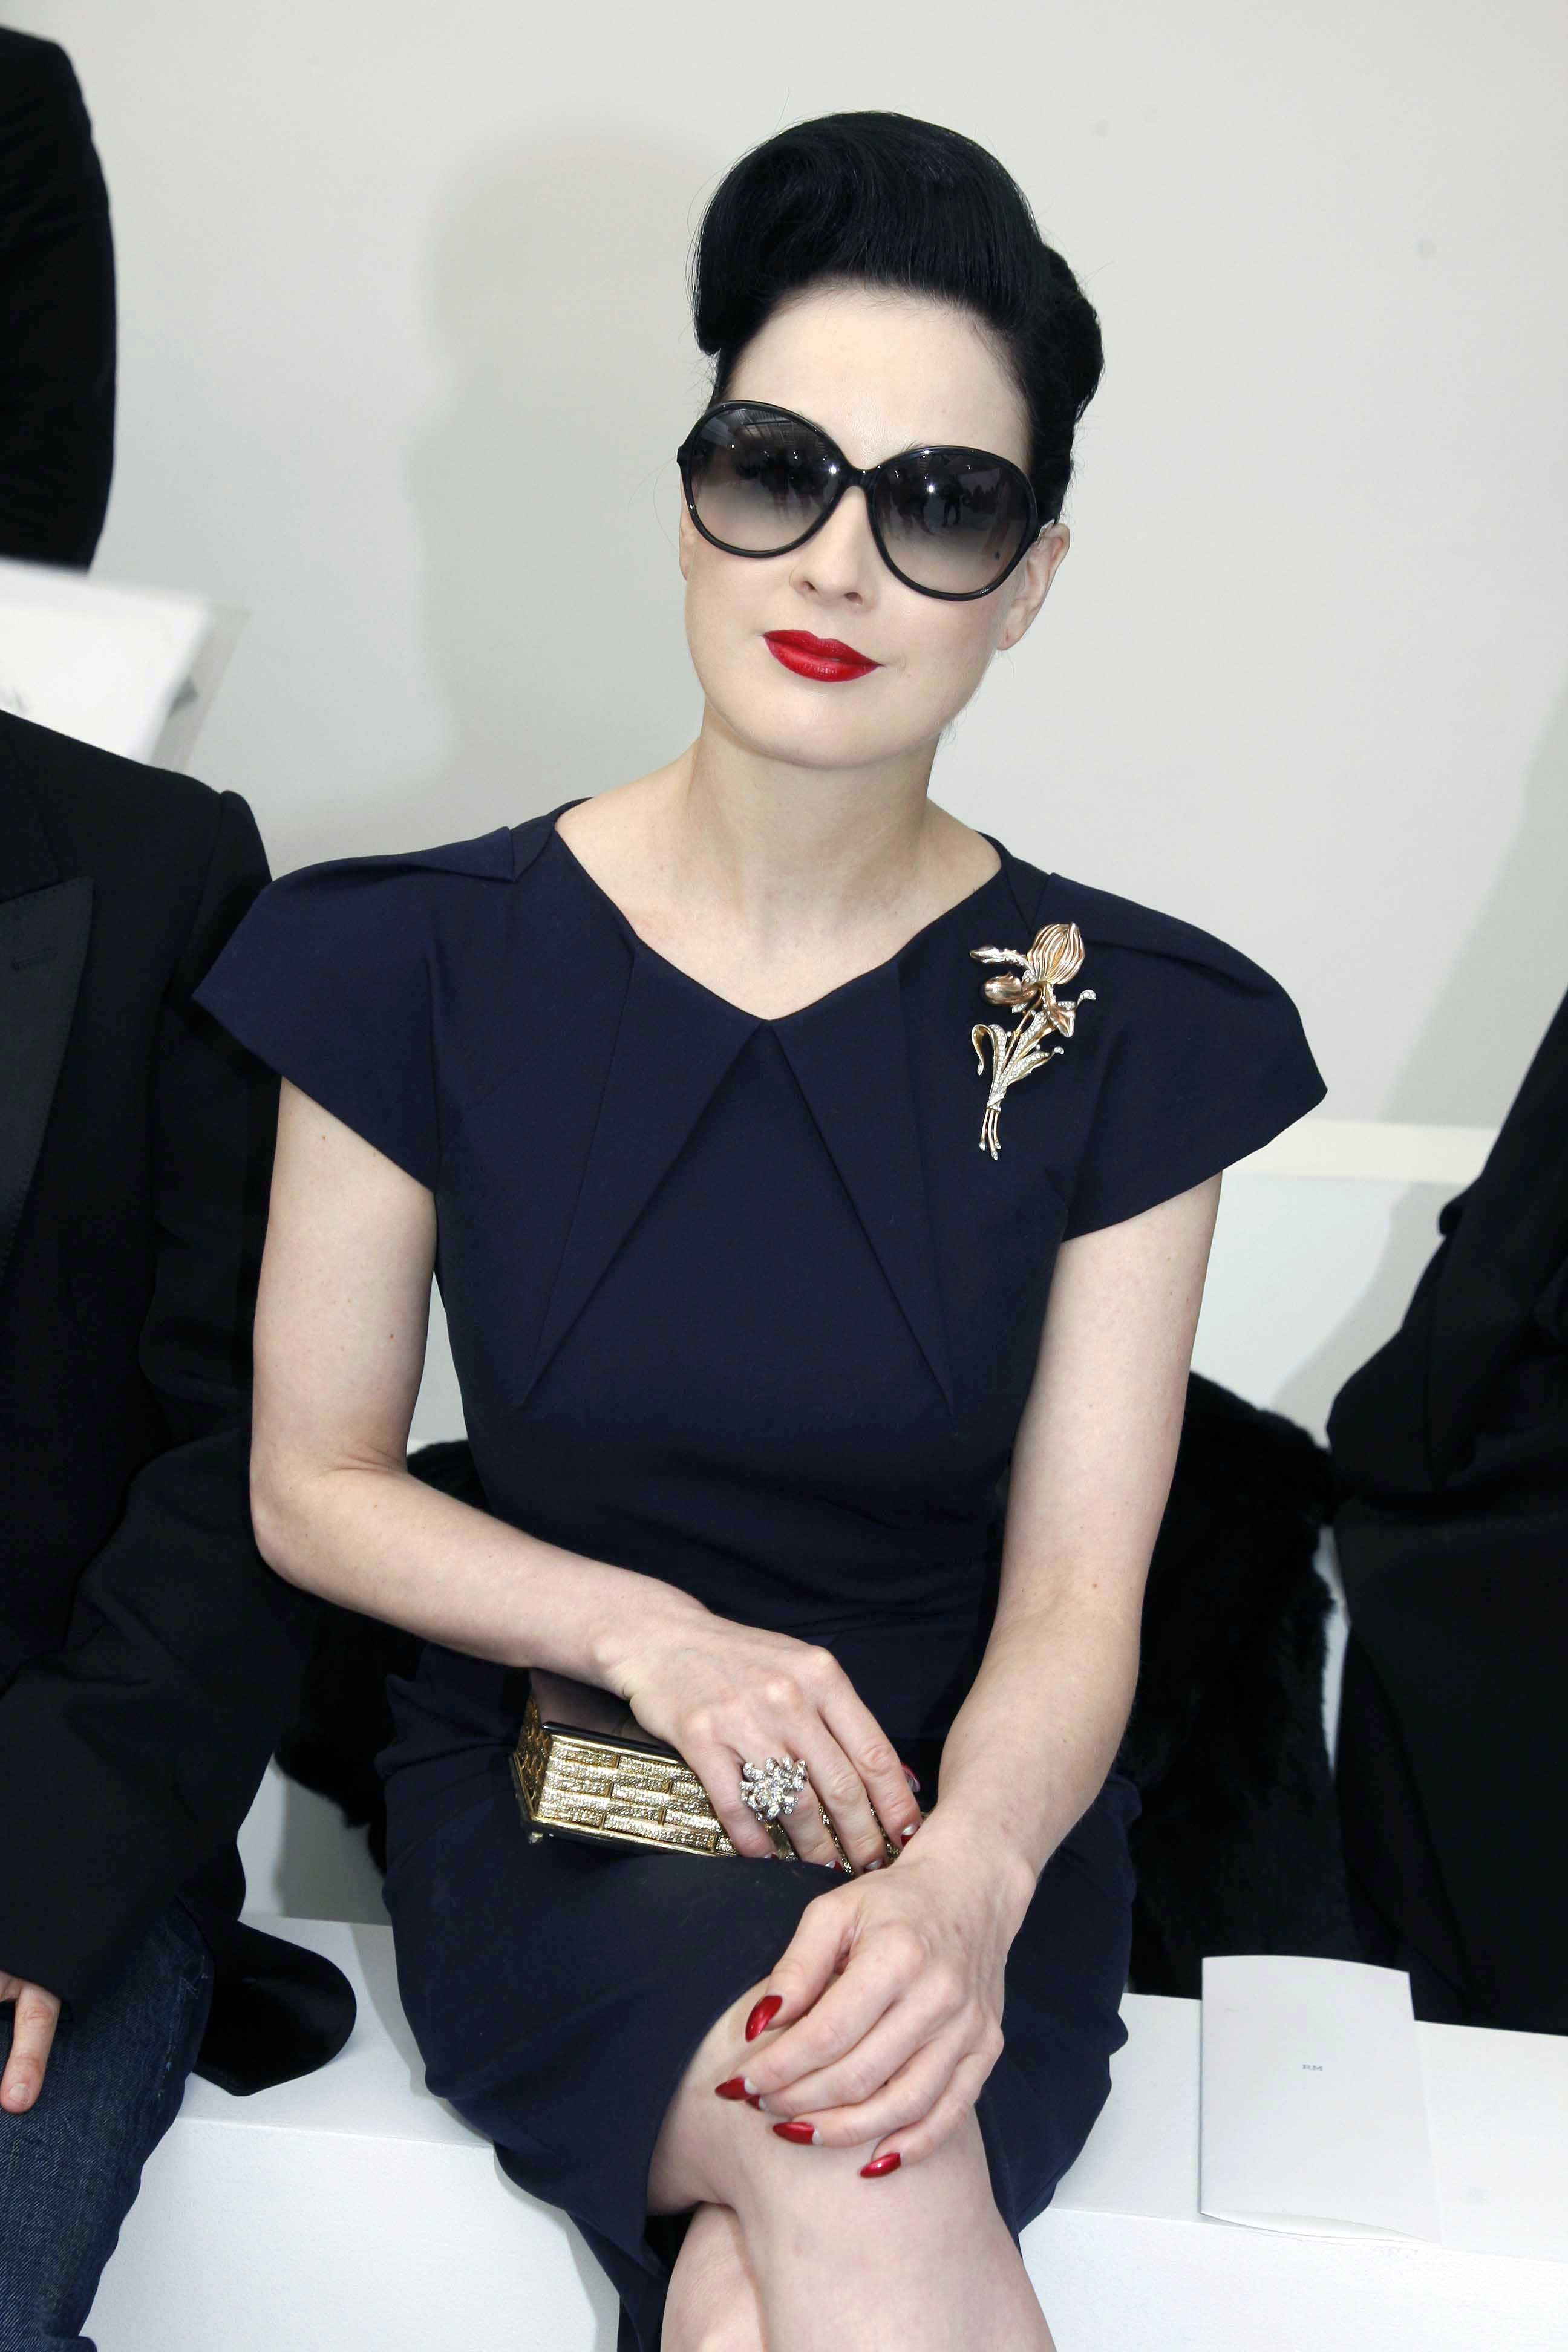 bcfd06305182 Dita von Teese could add large brooch t0 black 1940 s dress